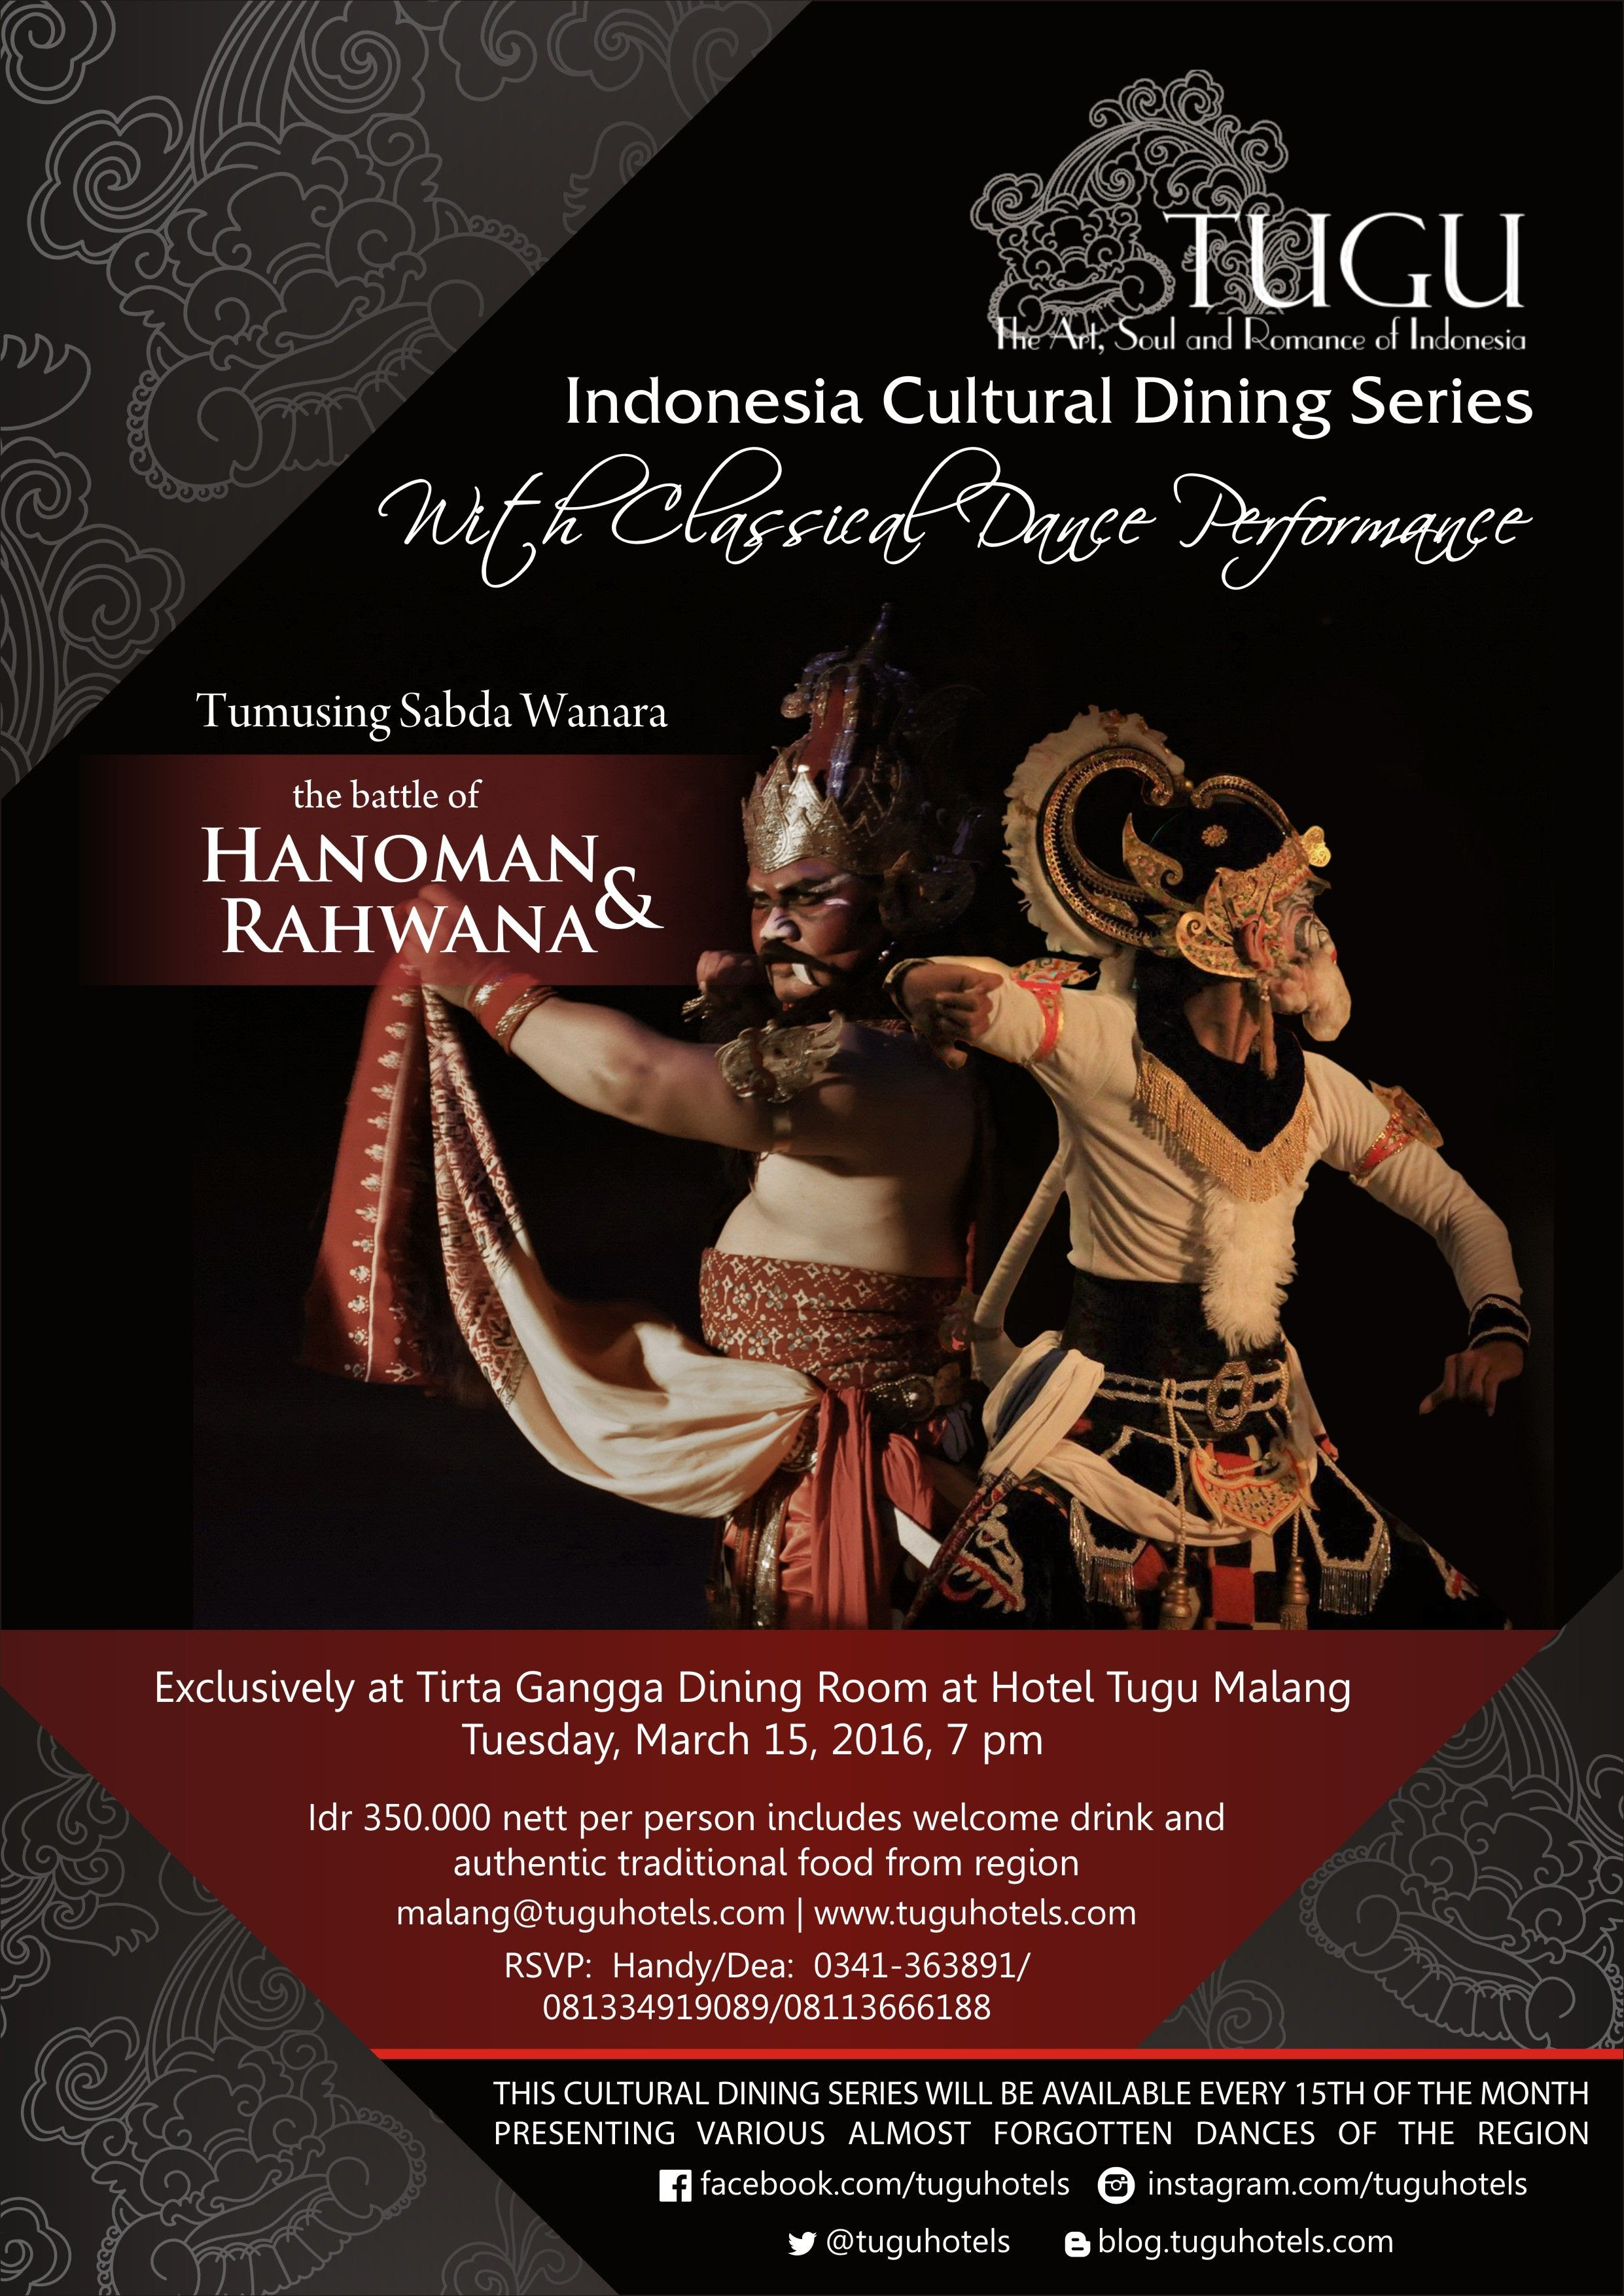 Indonesia Cultural Dining Series at Hotel Tugu Malang  Whats on @Tugu